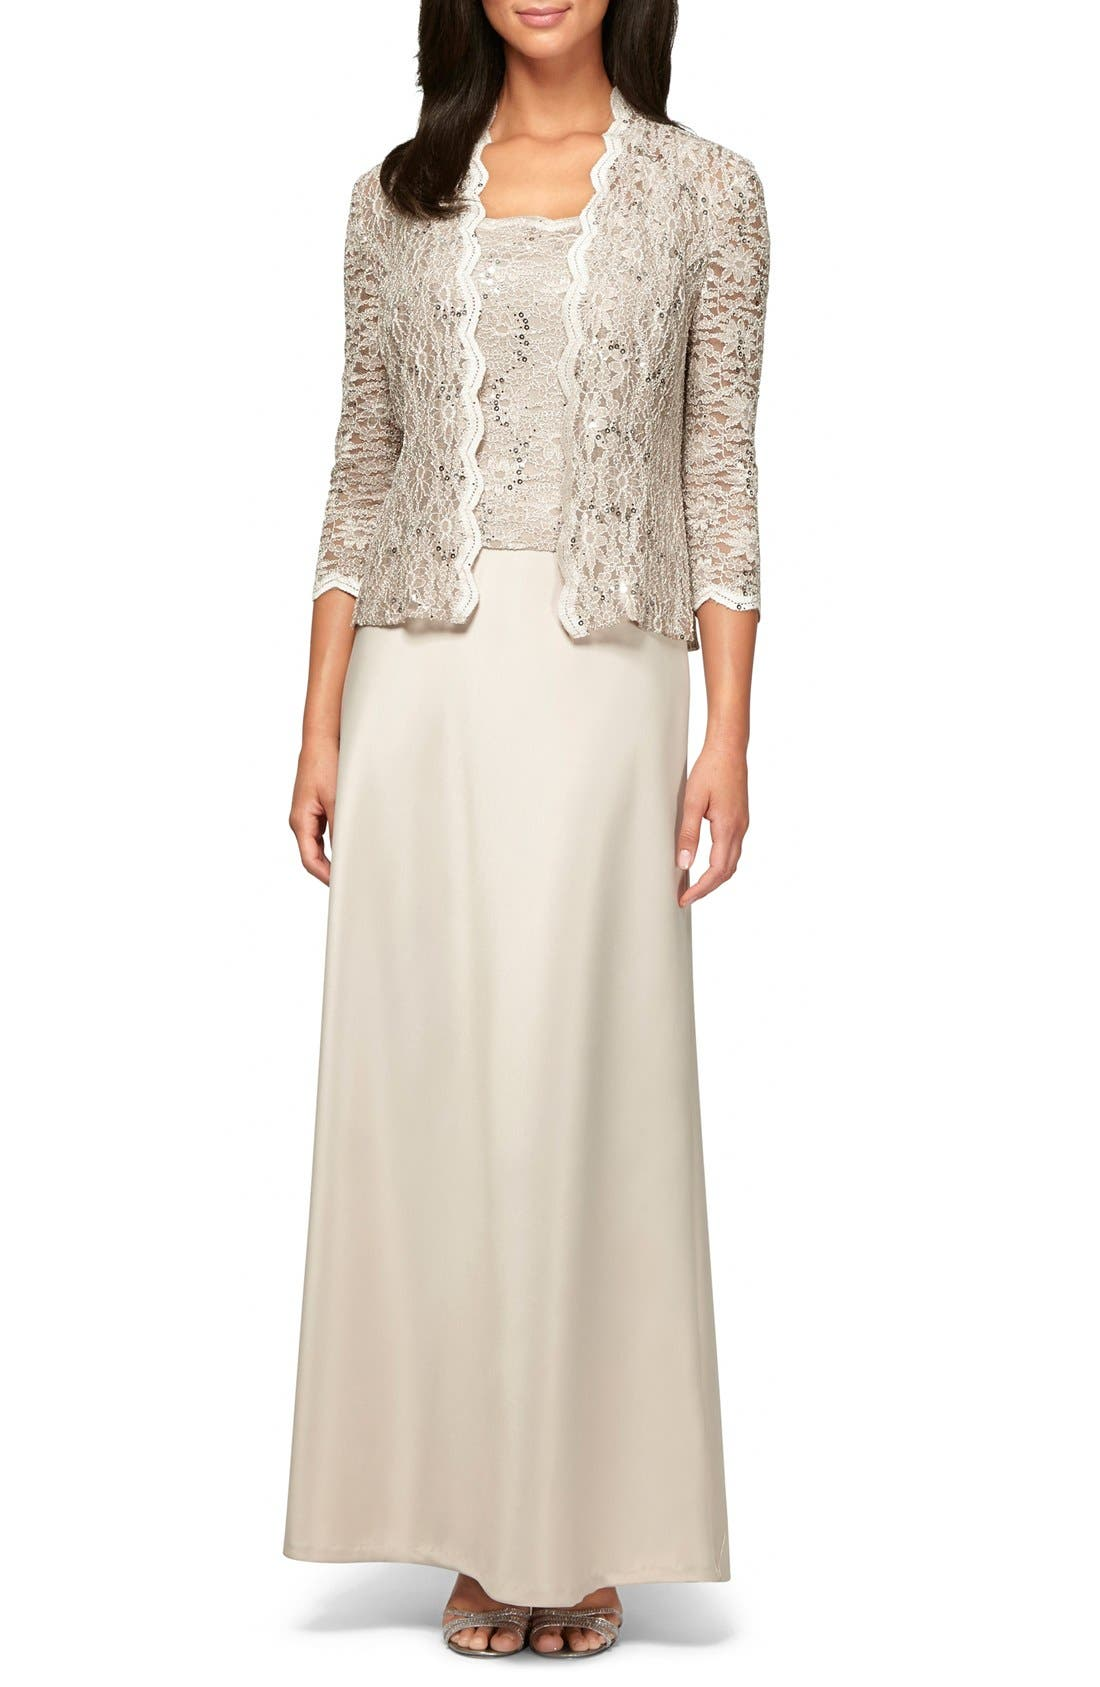 ALEX EVENINGS Sequin Lace & Satin Gown with Jacket, Main, color, TAUPE